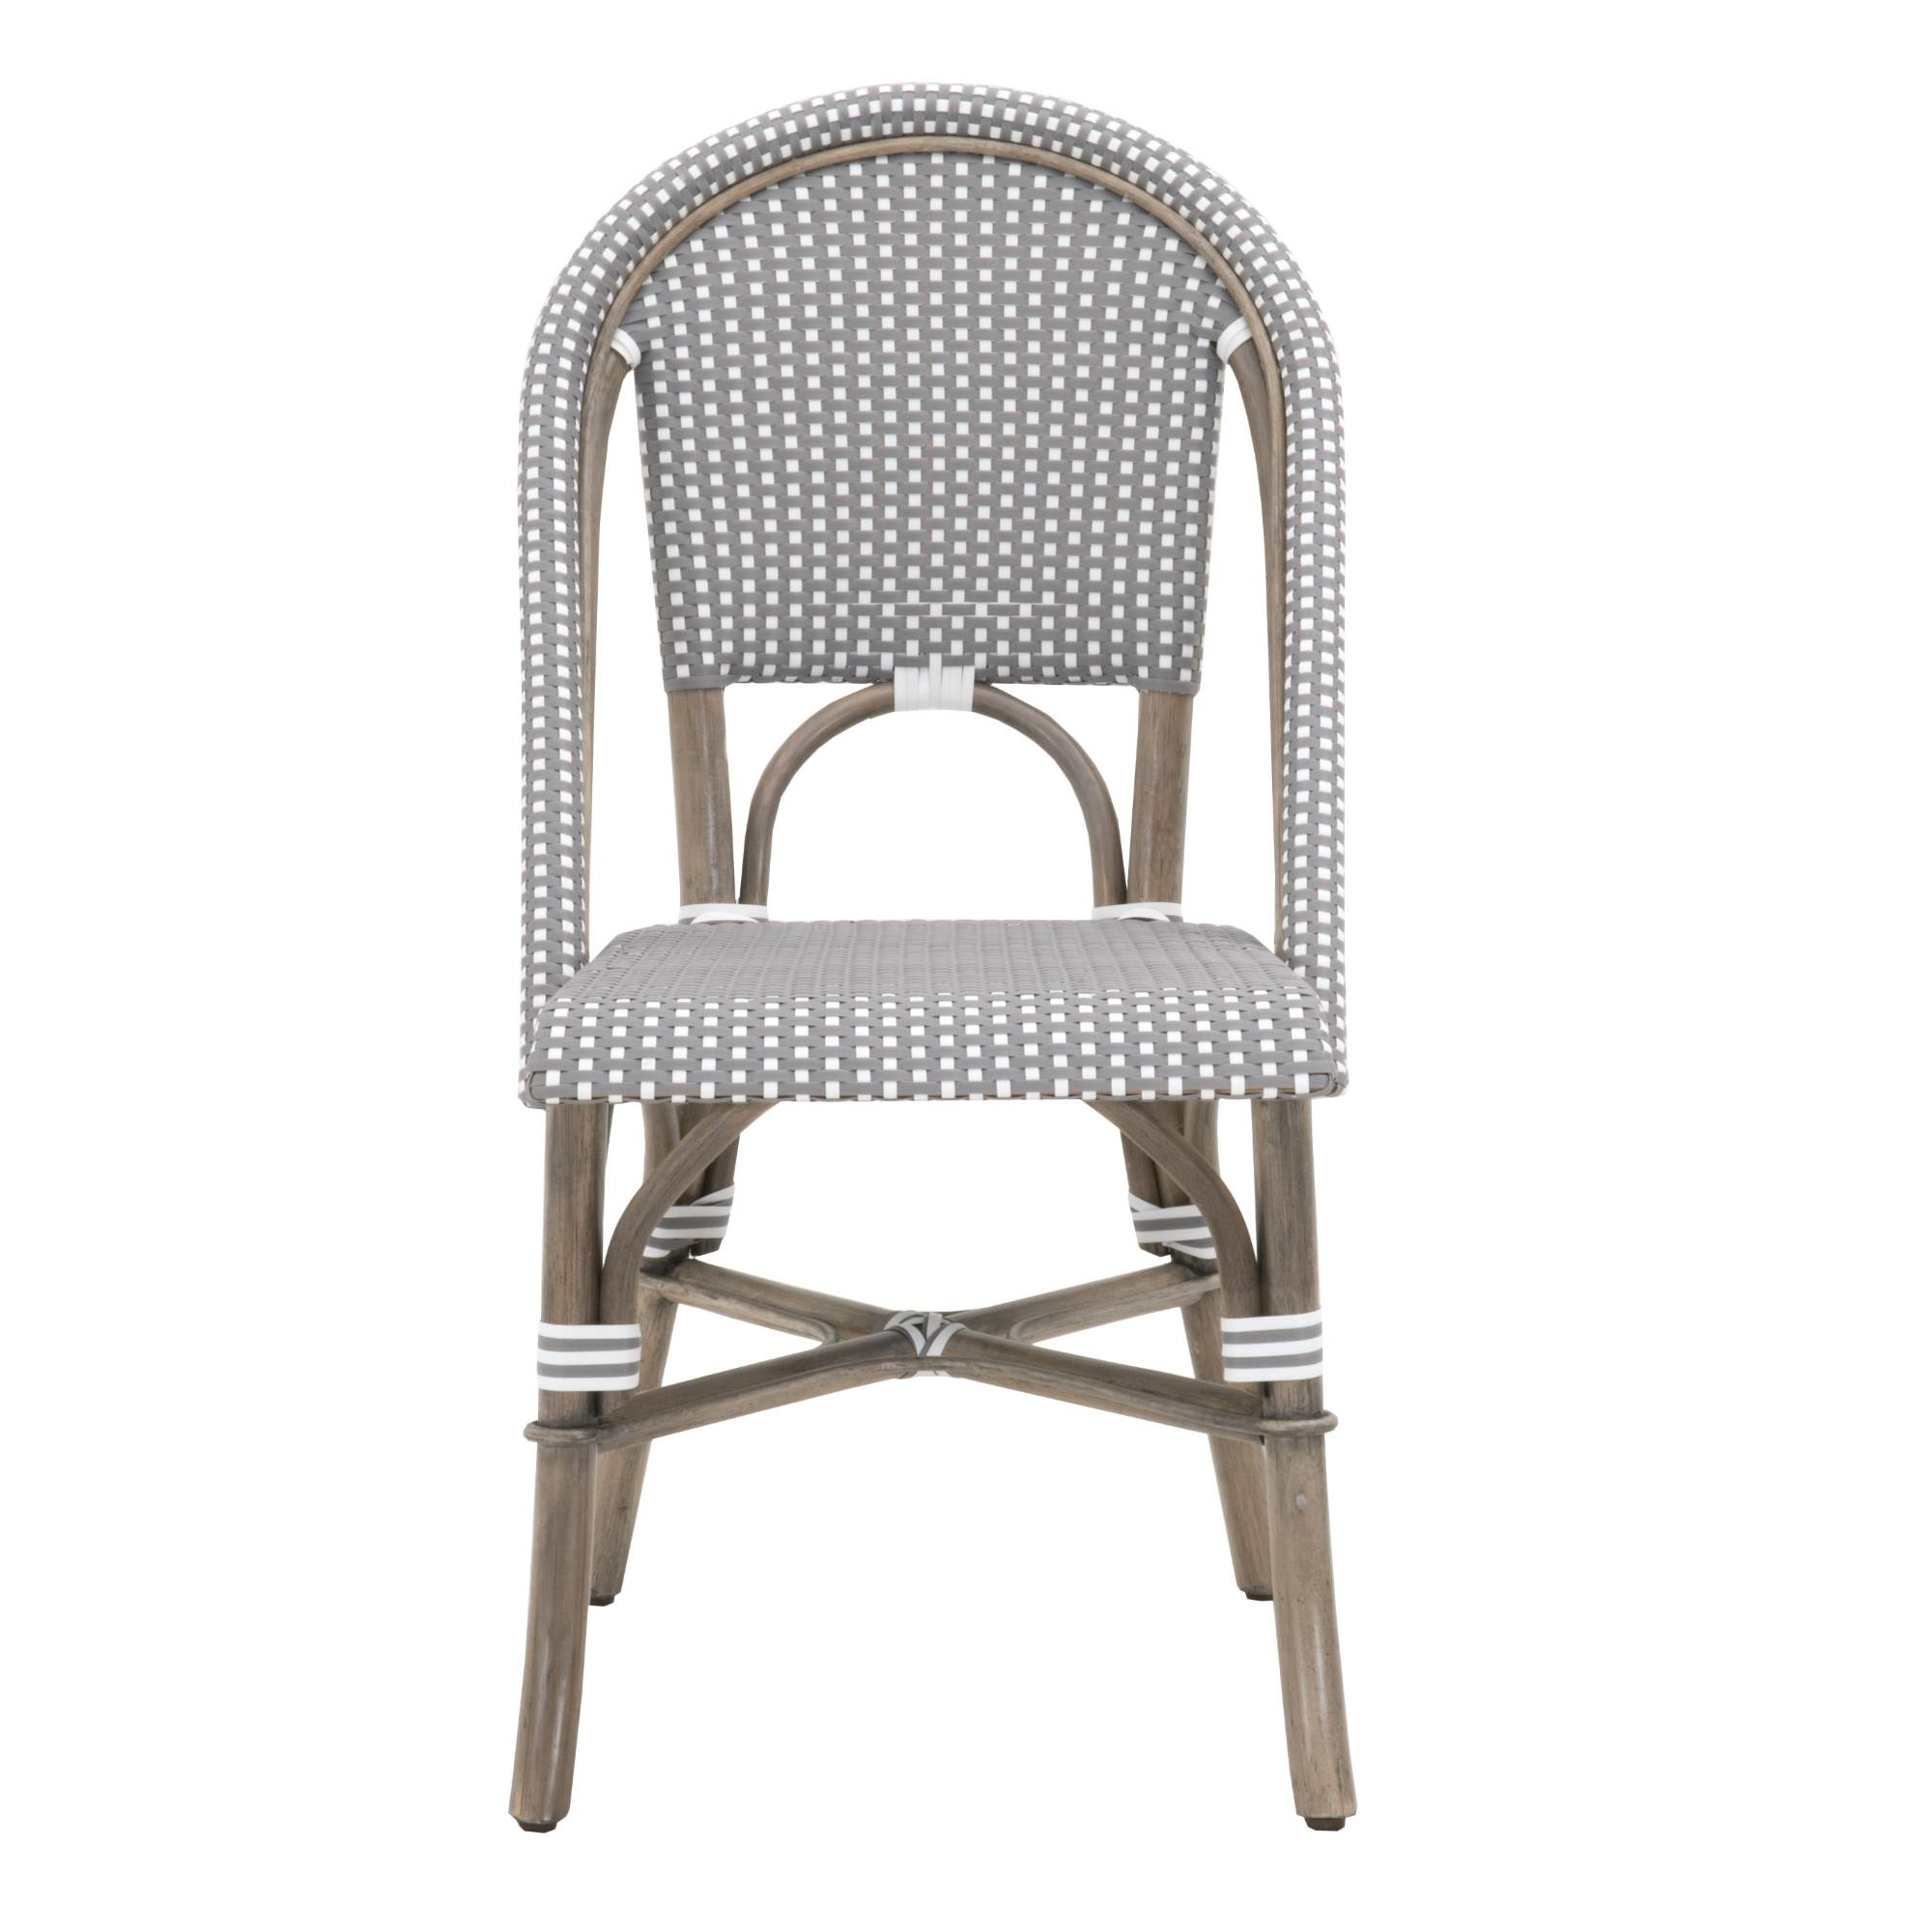 Woven Dining Chair Woven Paris Dining Chair Set Of 2 6857 Ogr Gry Wht